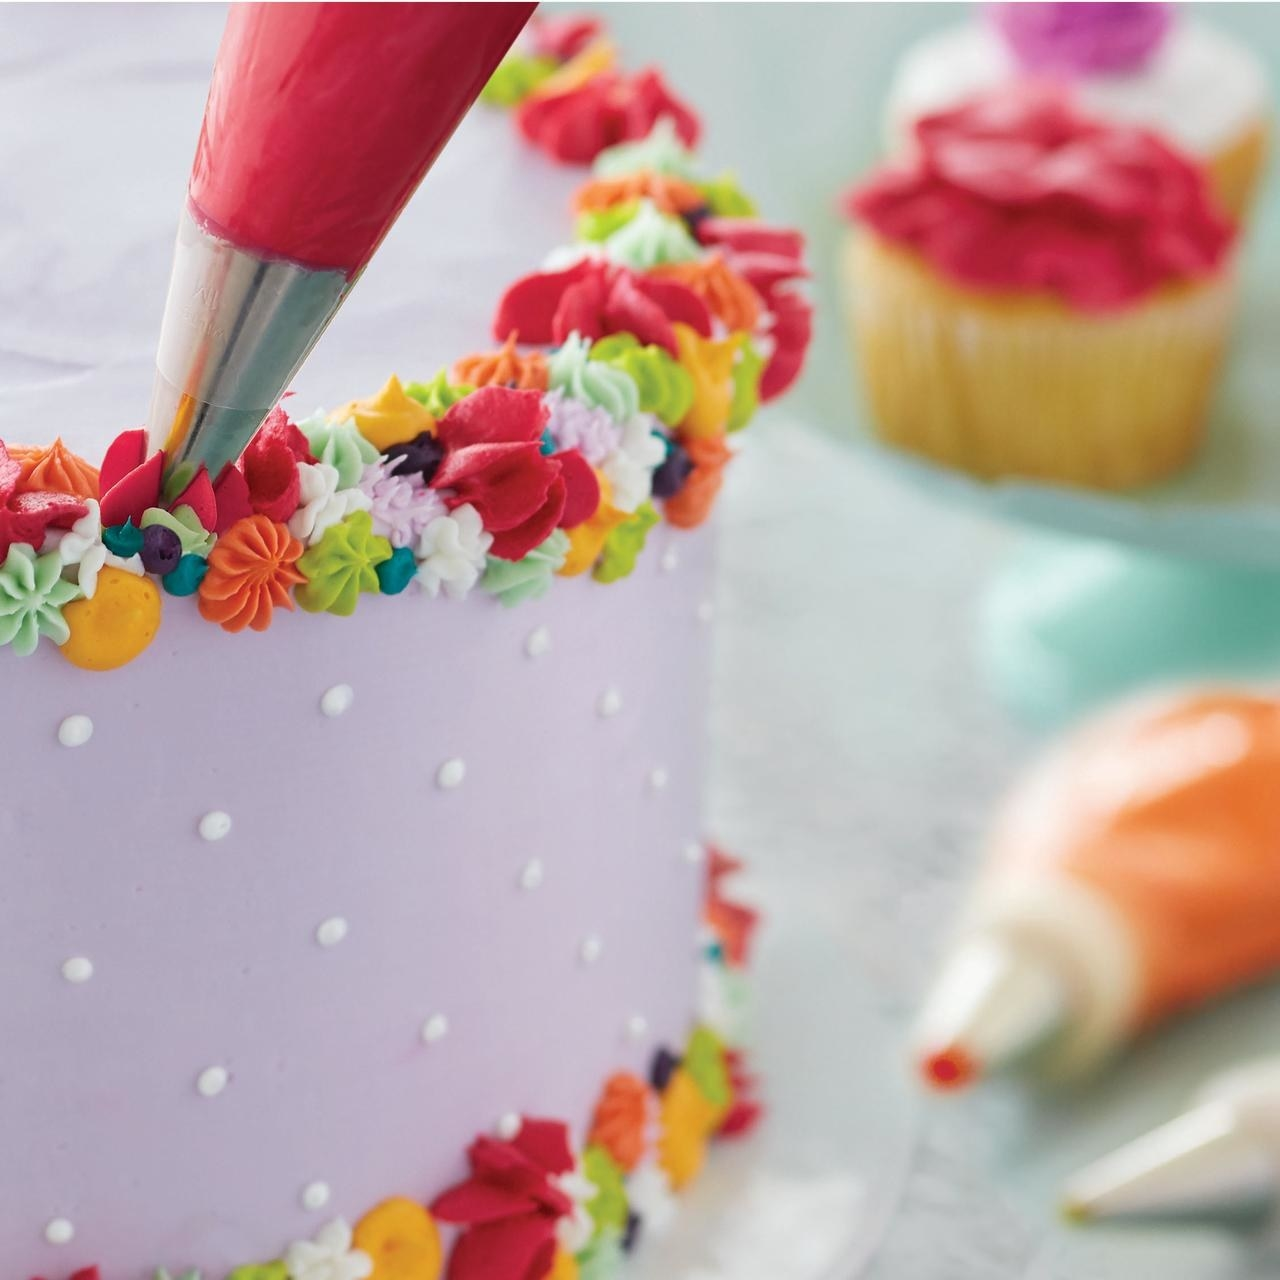 The frosting piper being used on cake